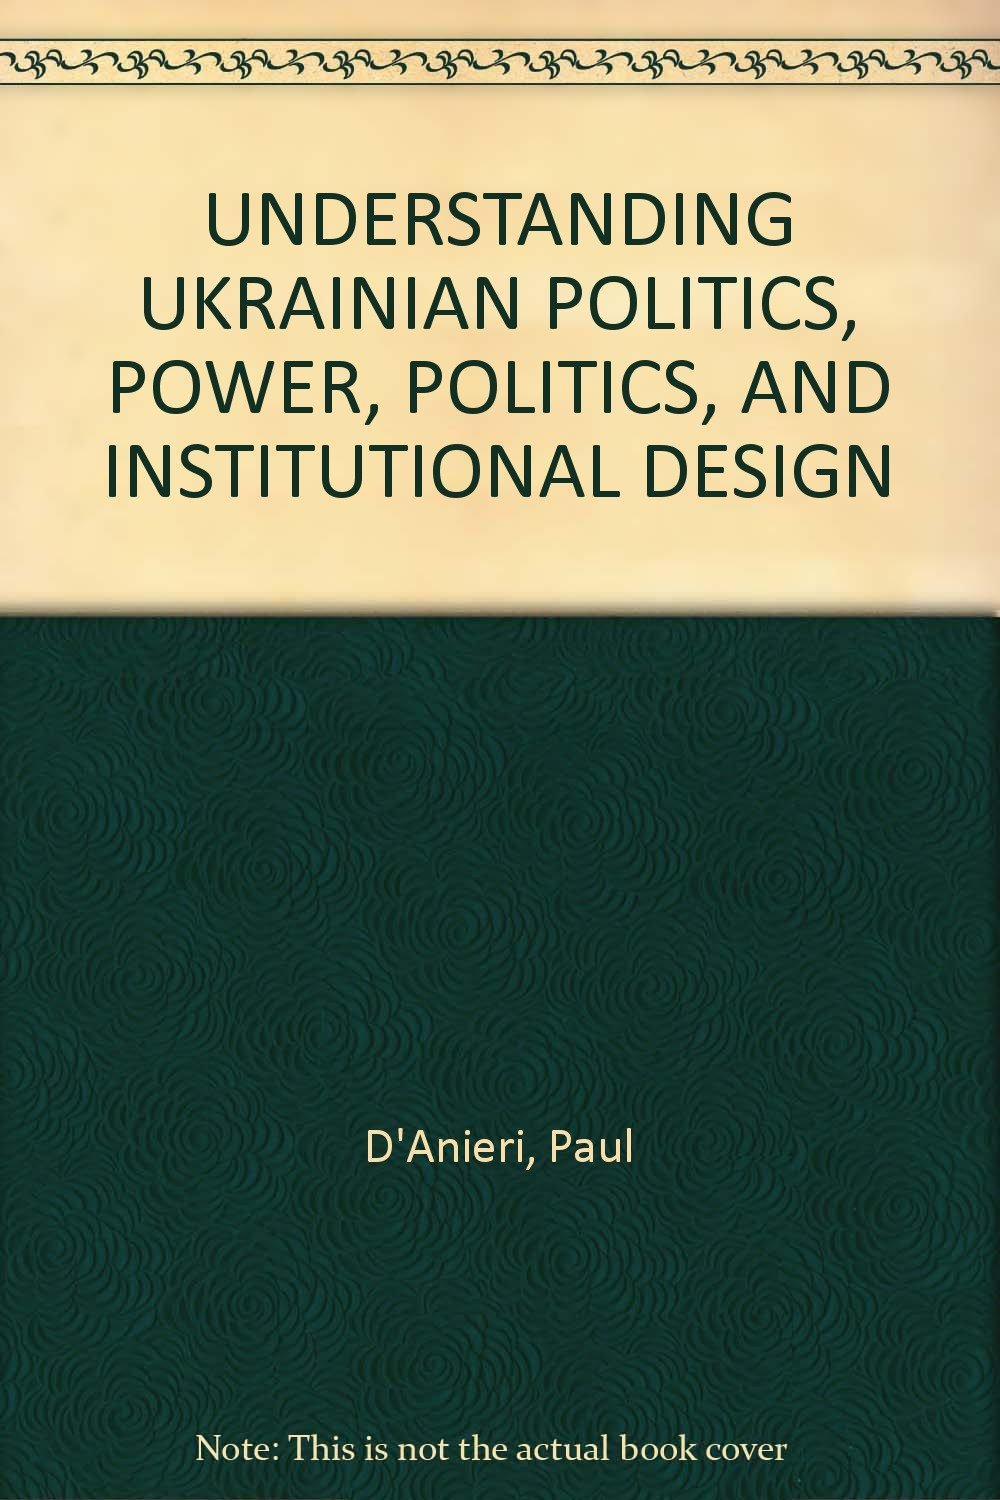 Democratic Peace - or War? Paul D'Anieri Assesses the Russia-Ukraine Conflict